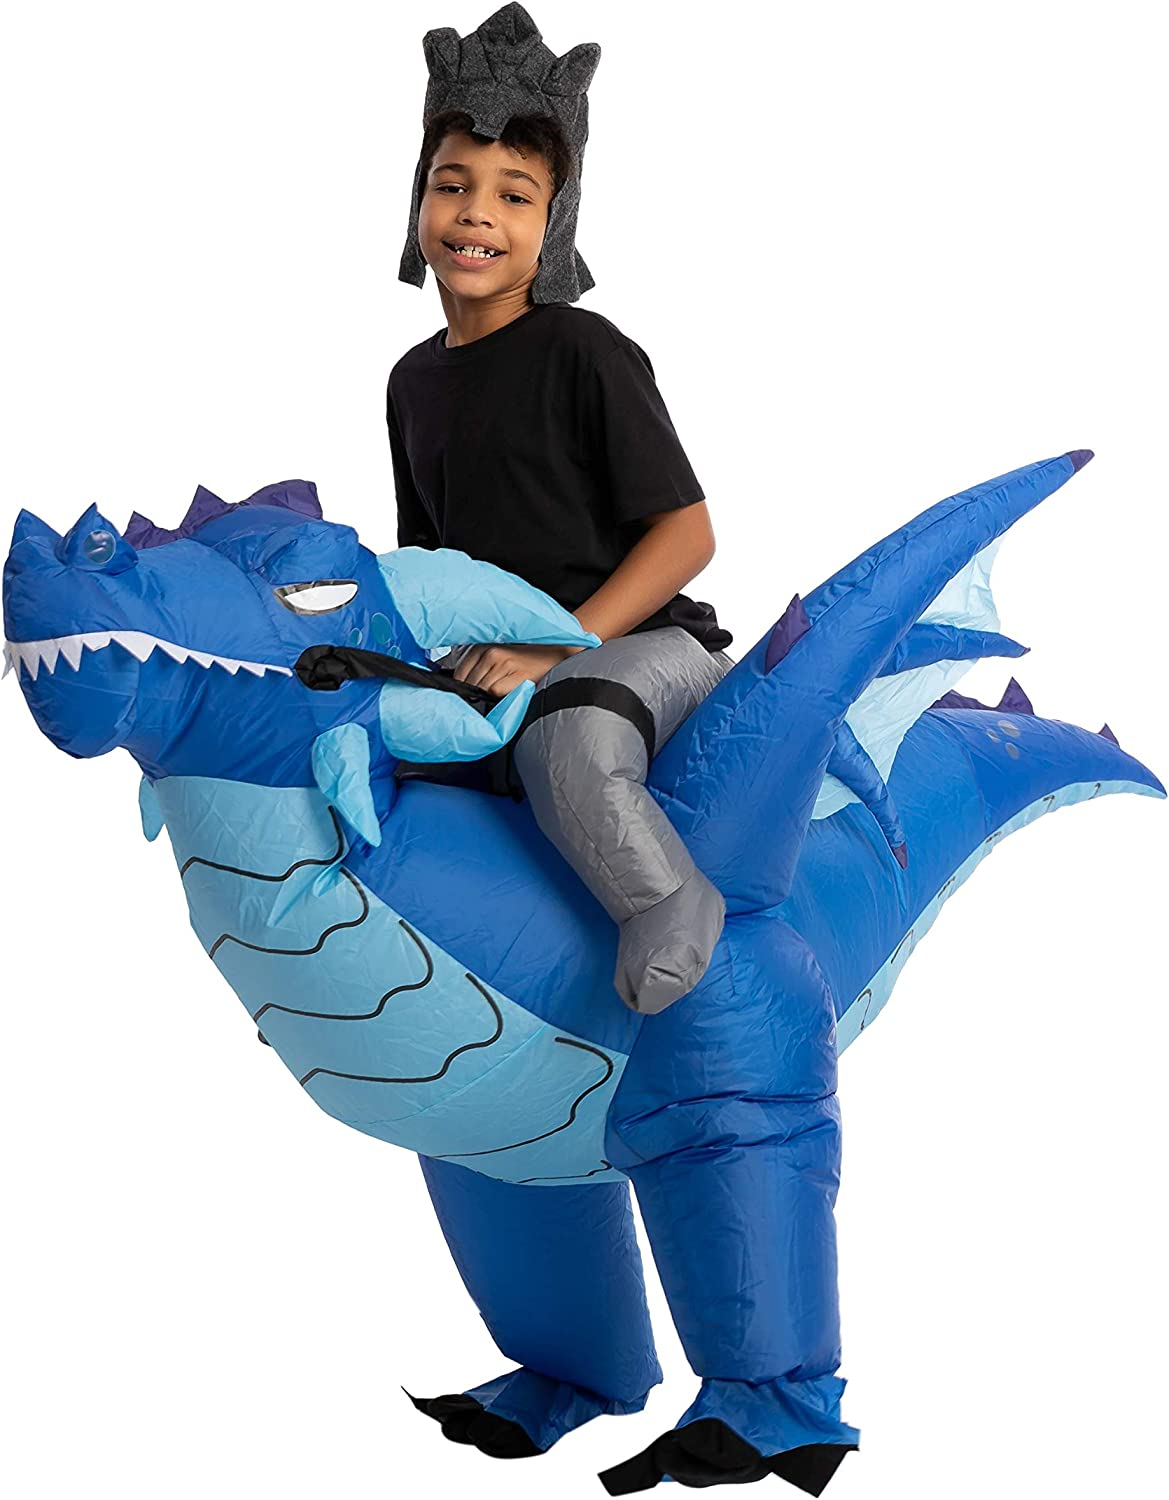 Spooktacular Creations Halloween Inflatable Costume Ride an Ice Dragon Inflatable Costume Blue Unisex